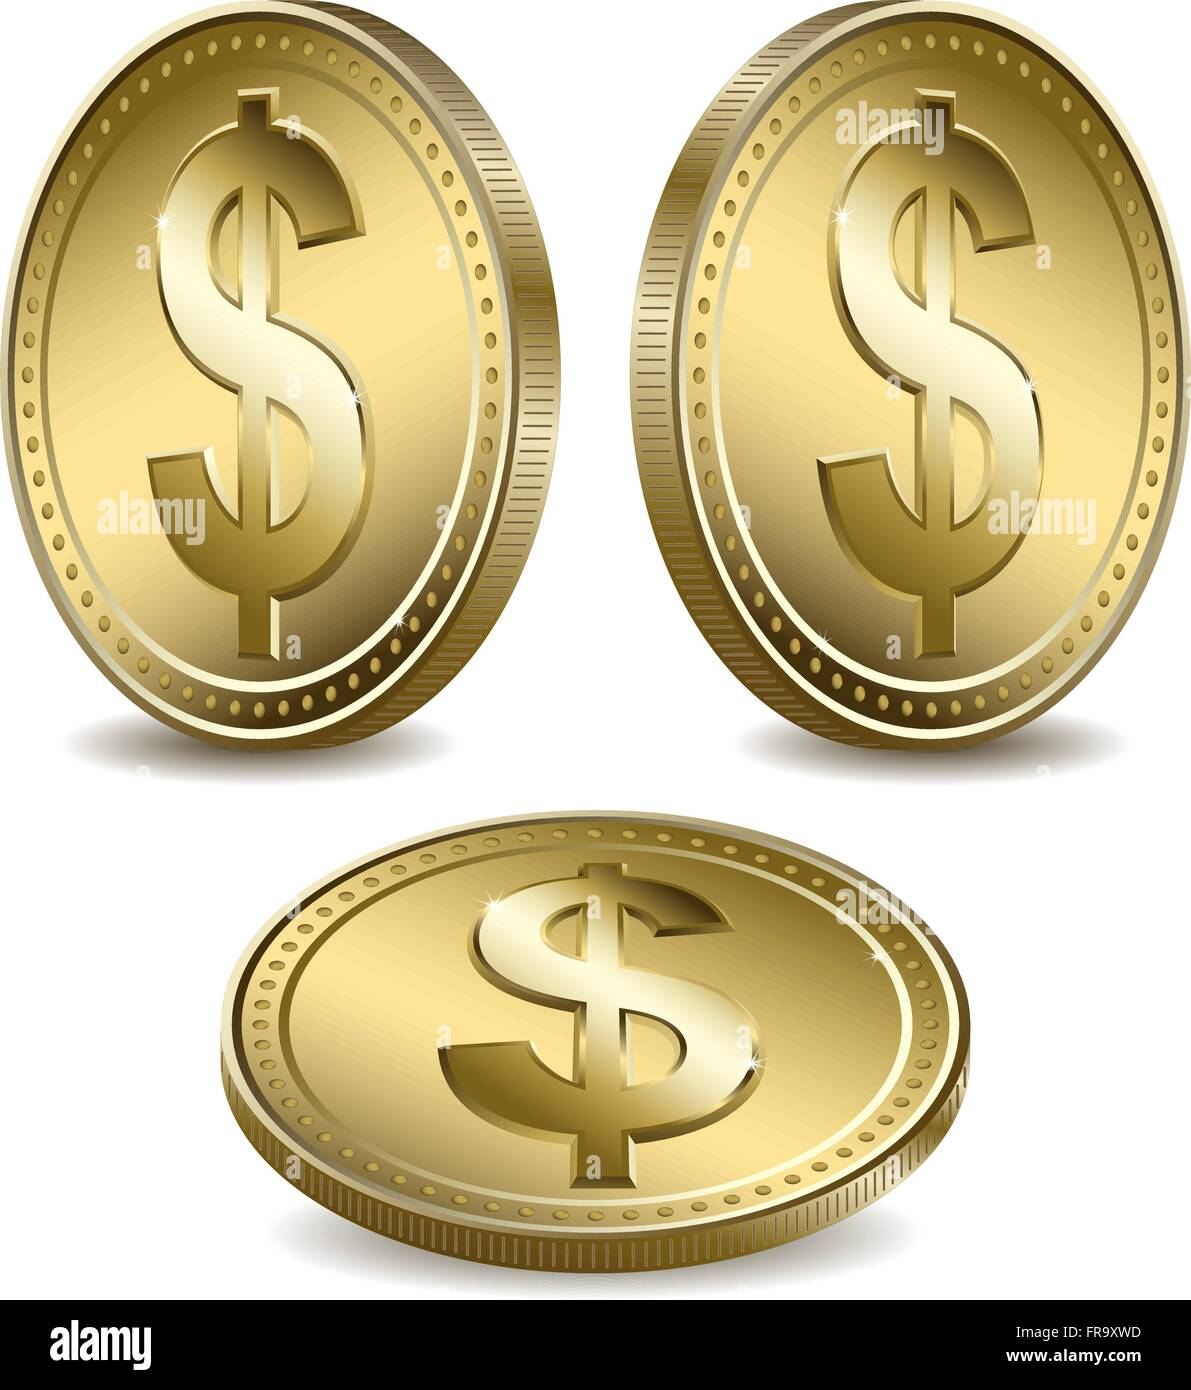 Computer Generated Gold Dollar Symbols On Coins Stock Vector Art